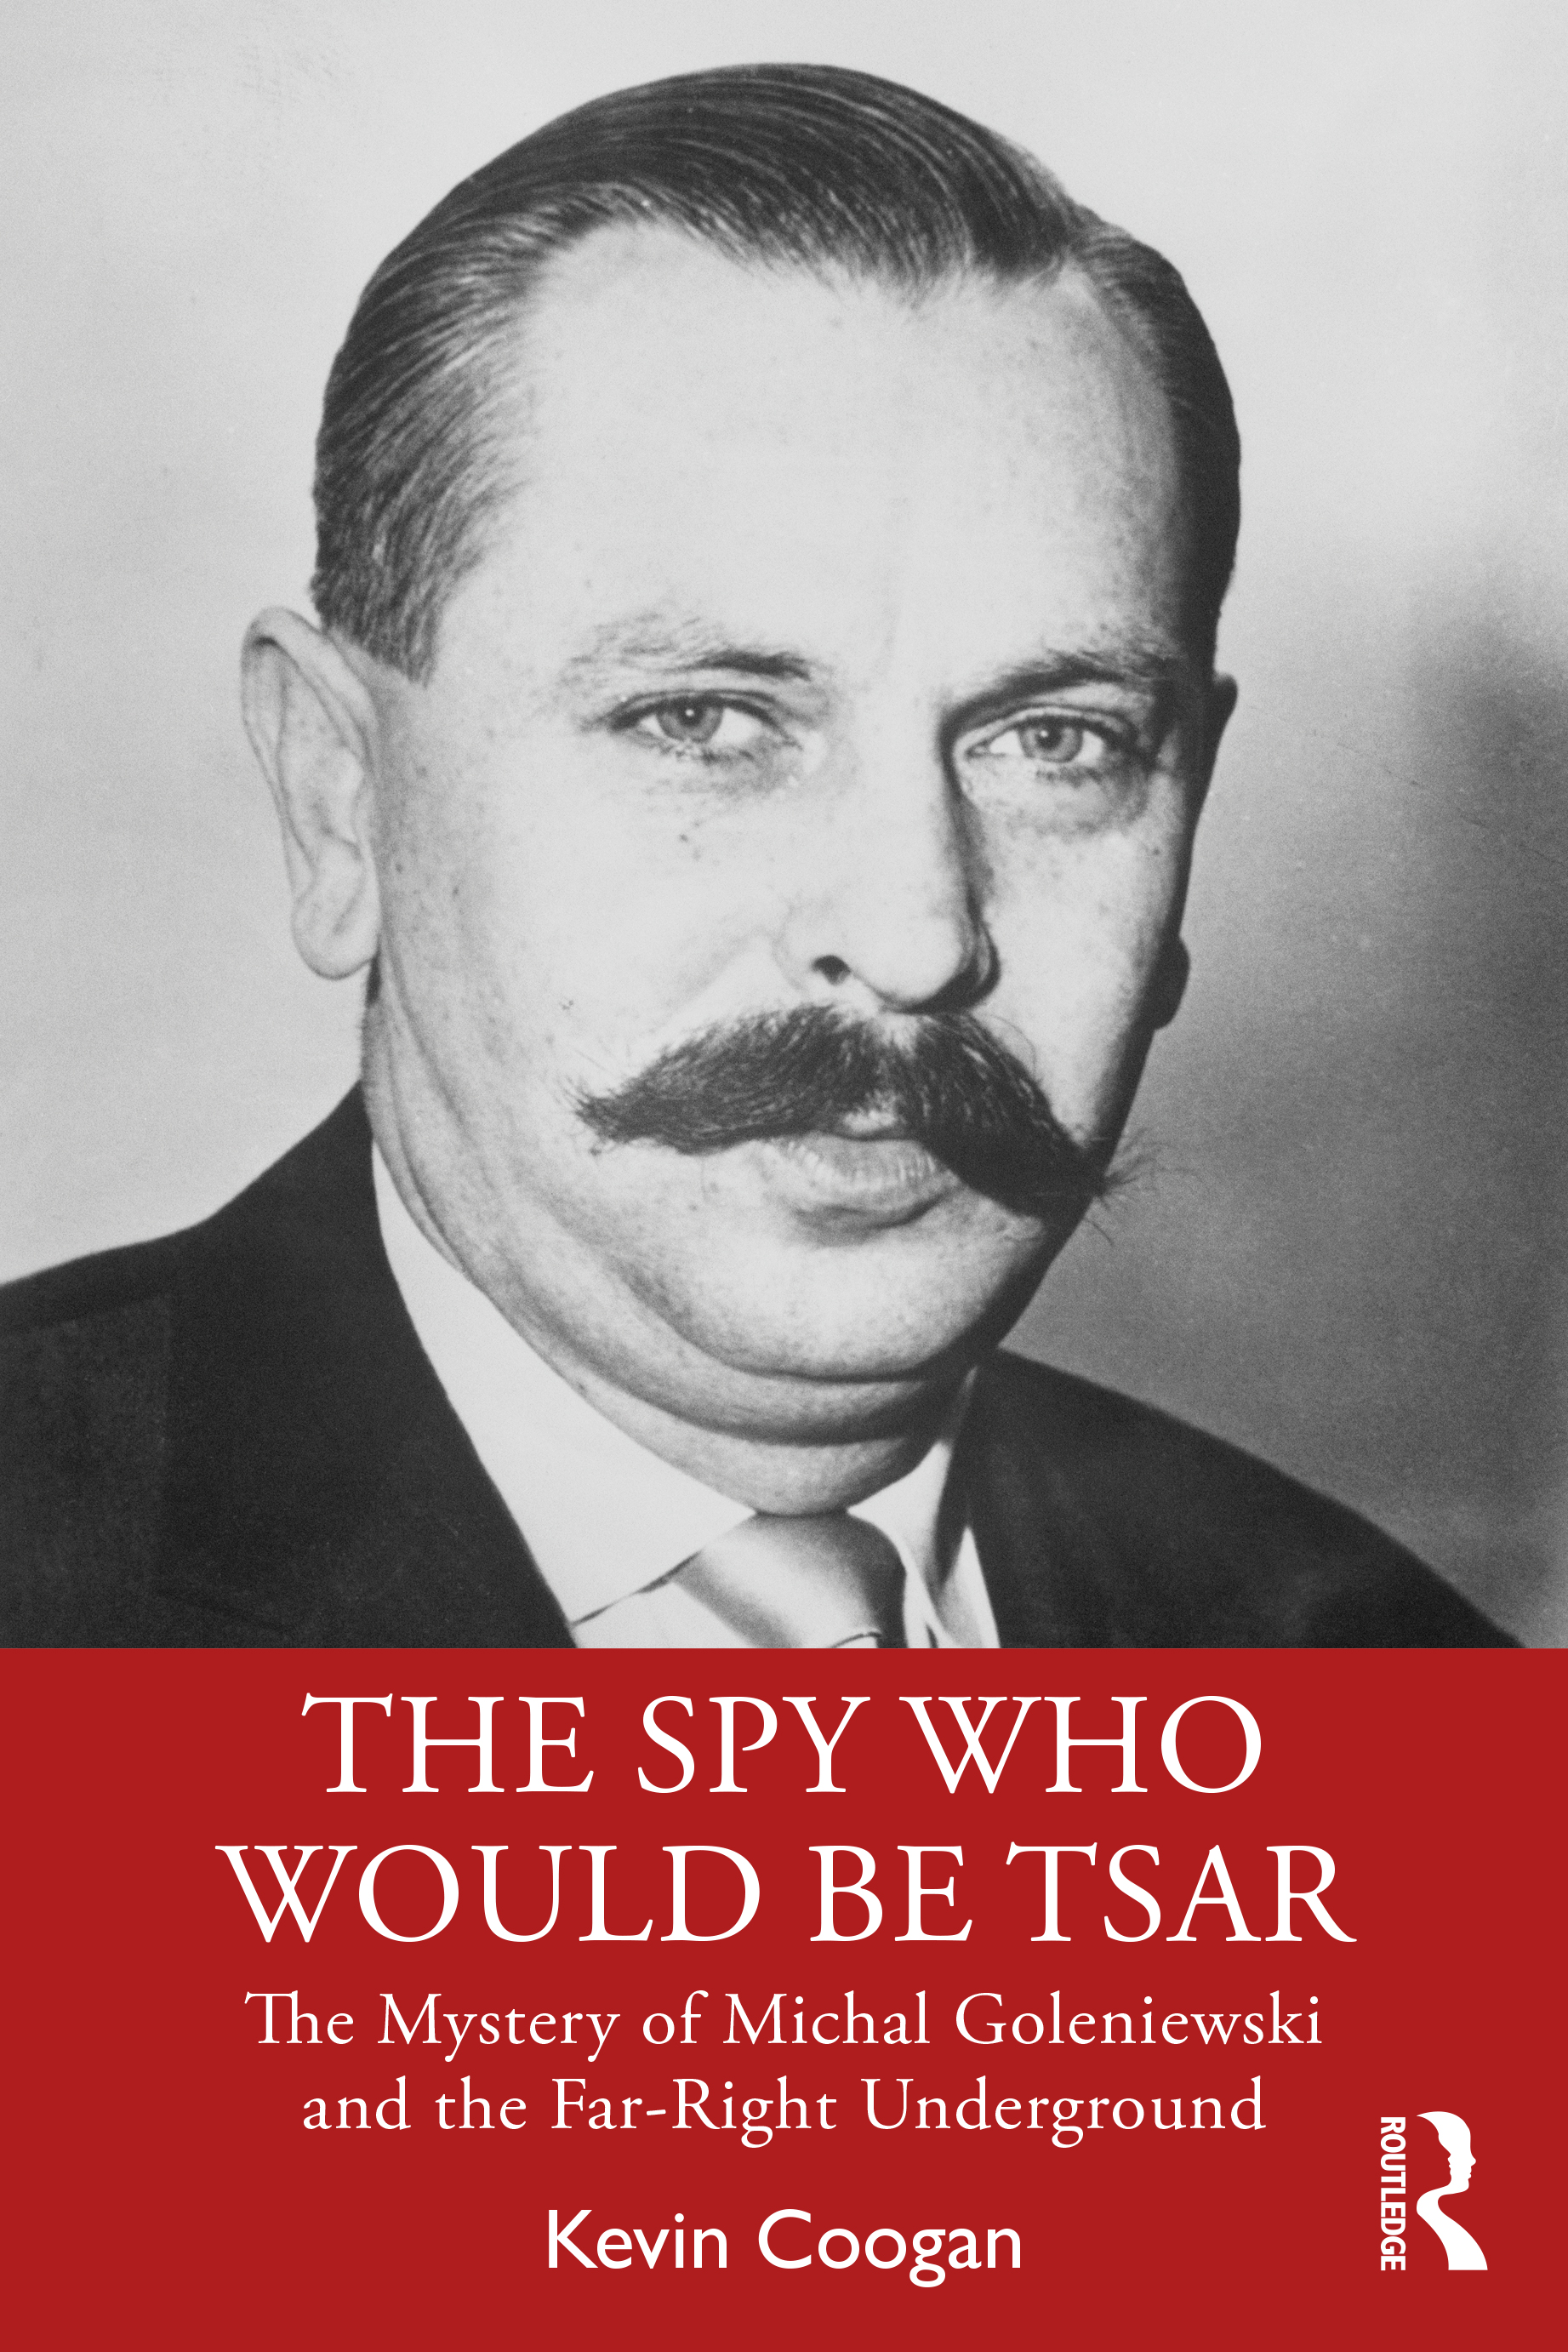 The Spy Who Would Be Tsar